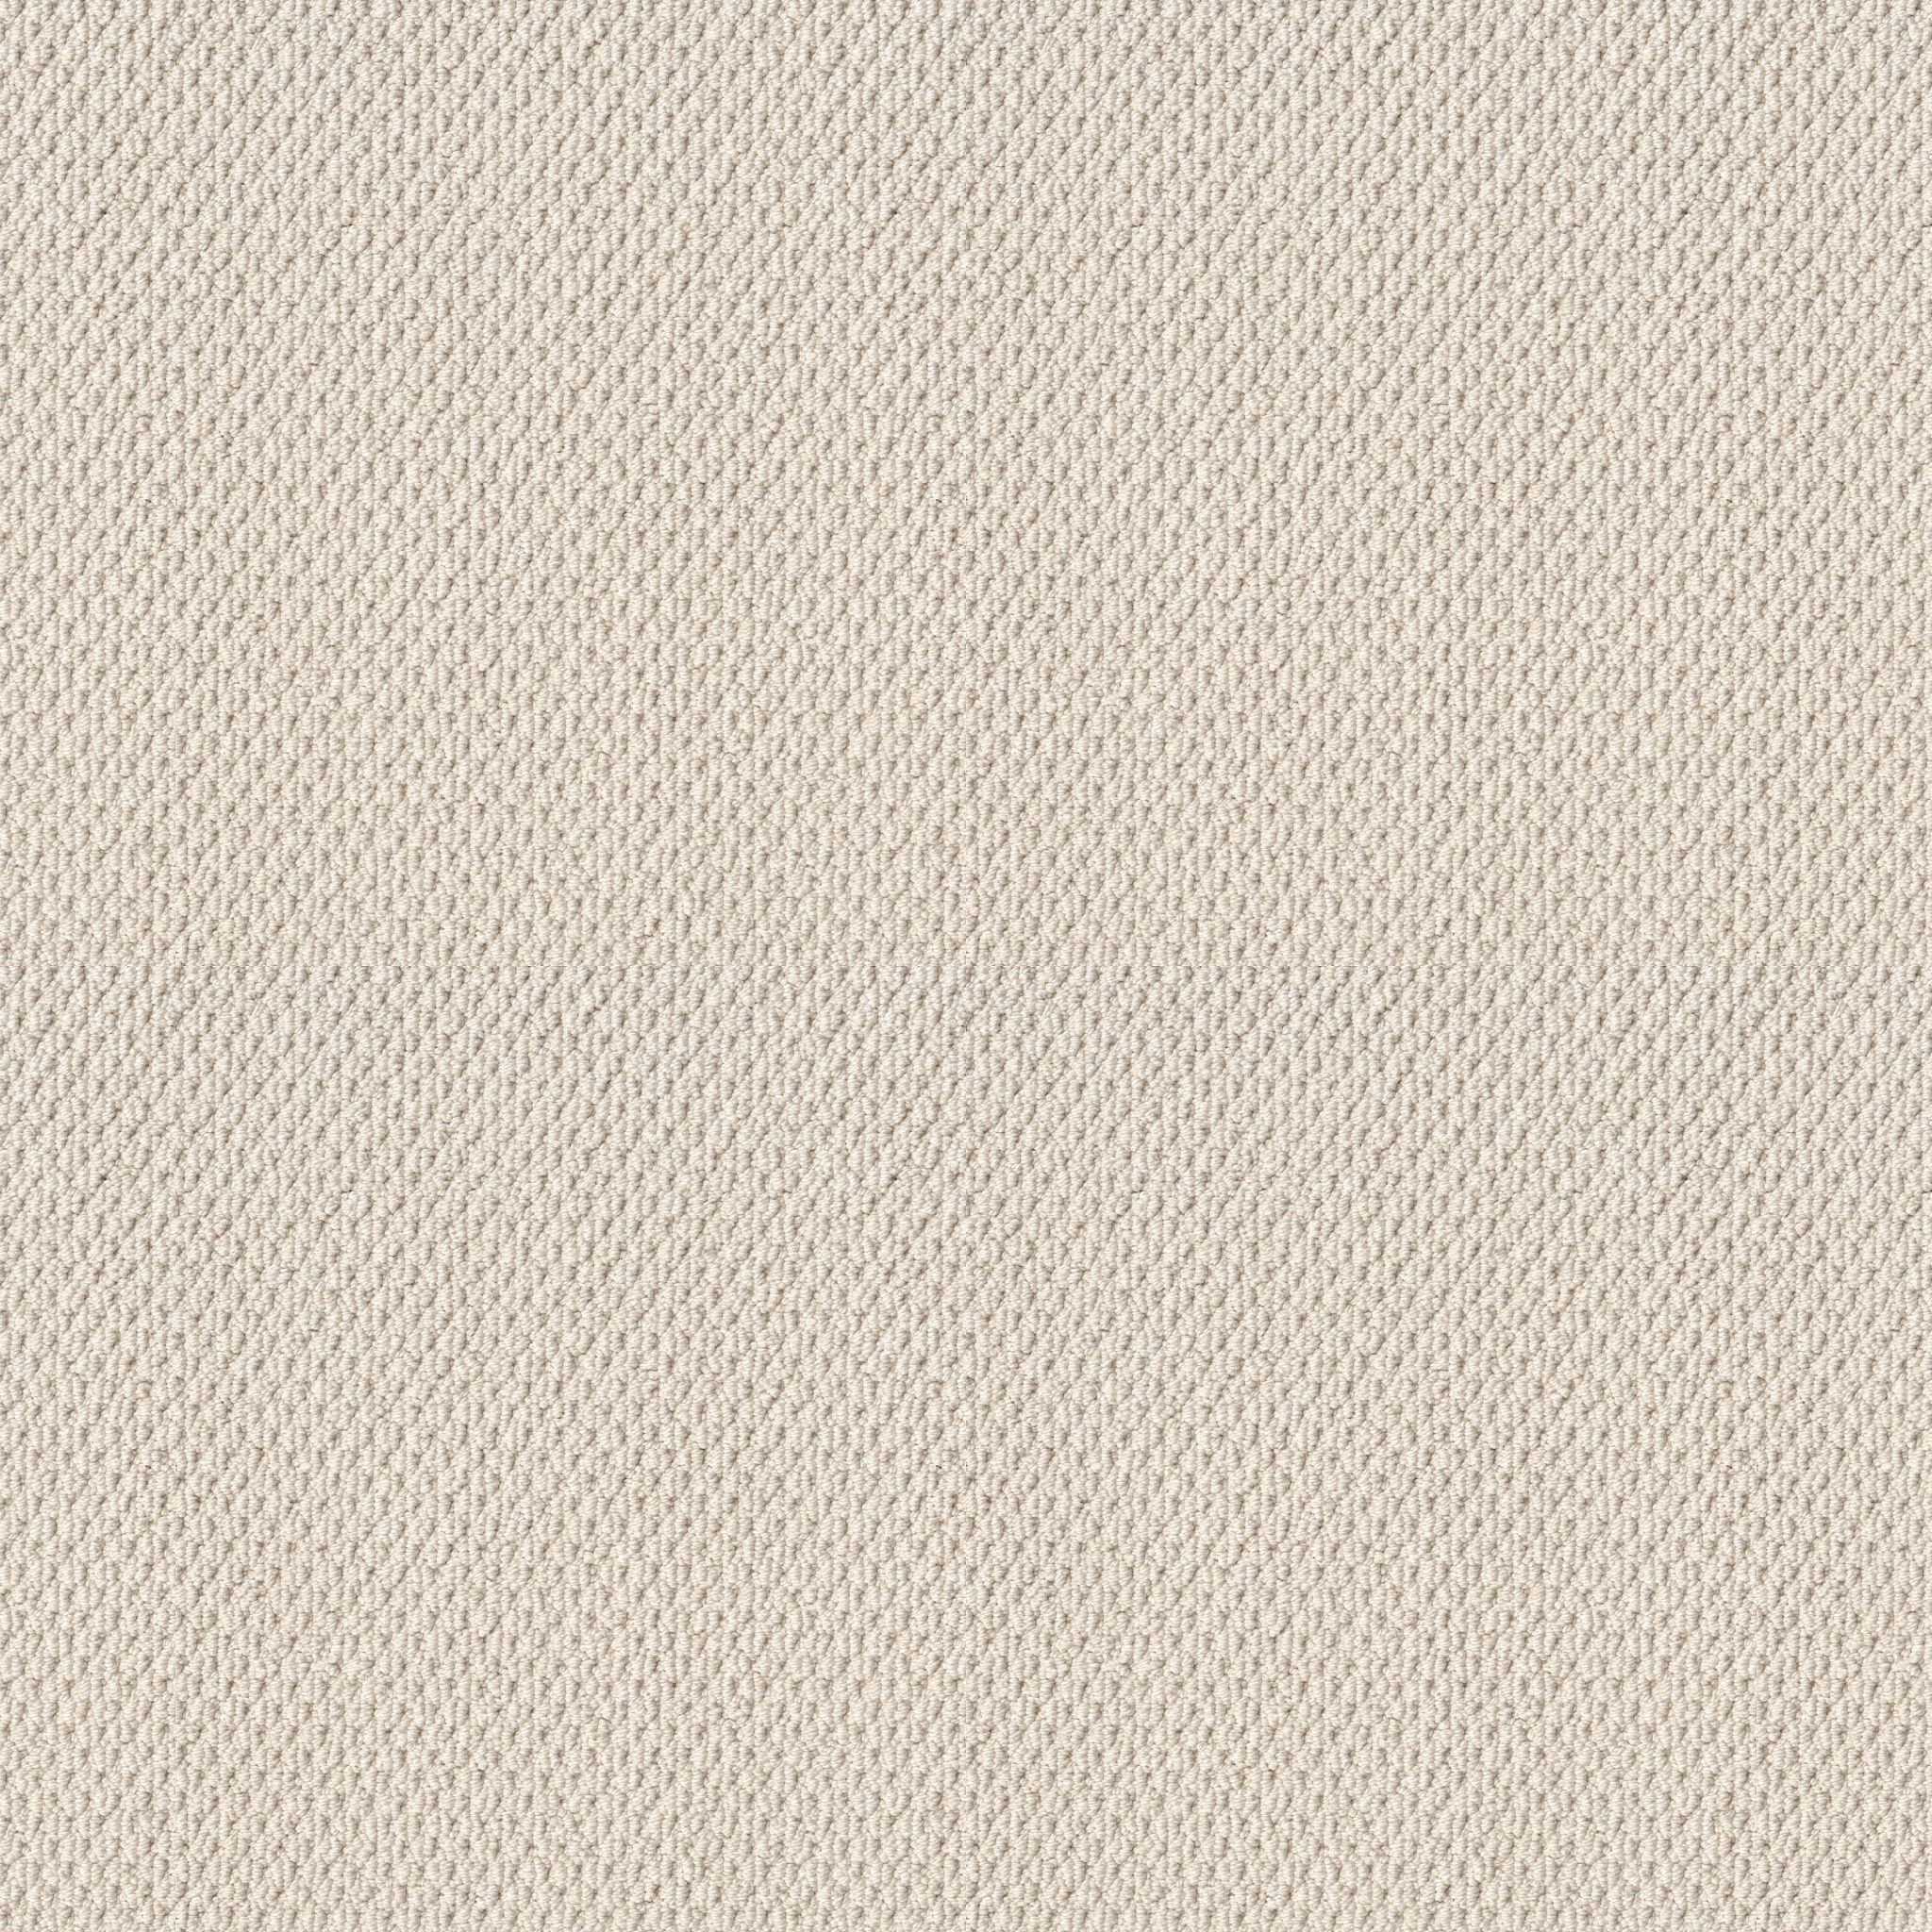 Style name and number: Naturalistic 5E442 and color name and number: Champagne Toast 00153